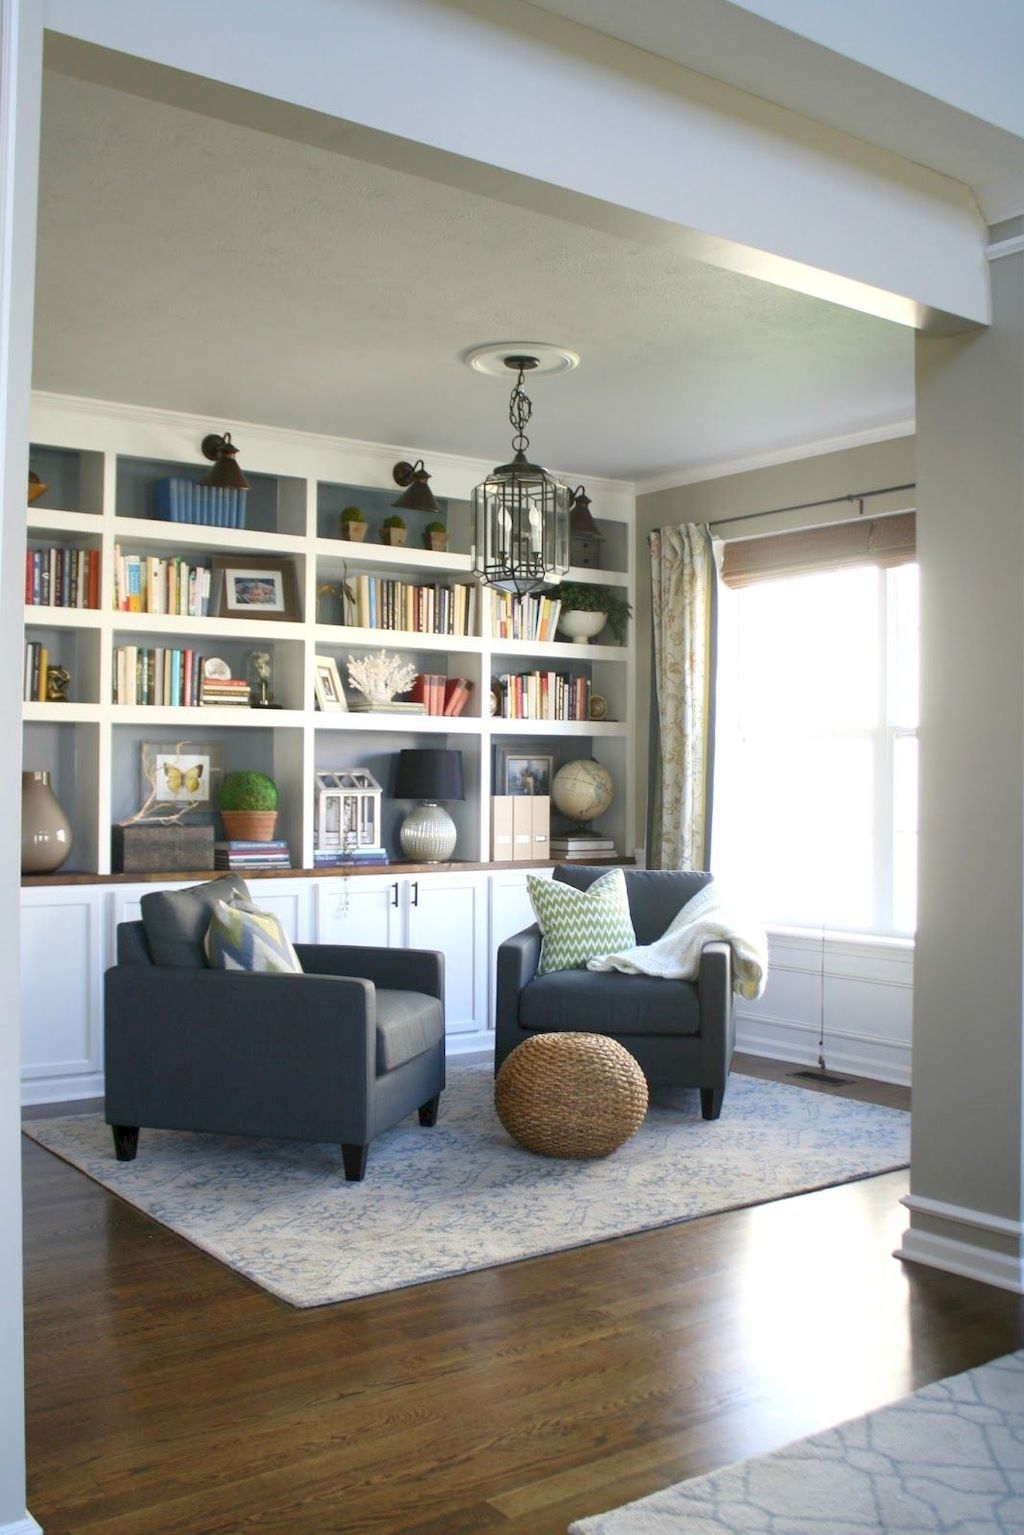 Small Living Room Remodel Design Ideas On A Budget images